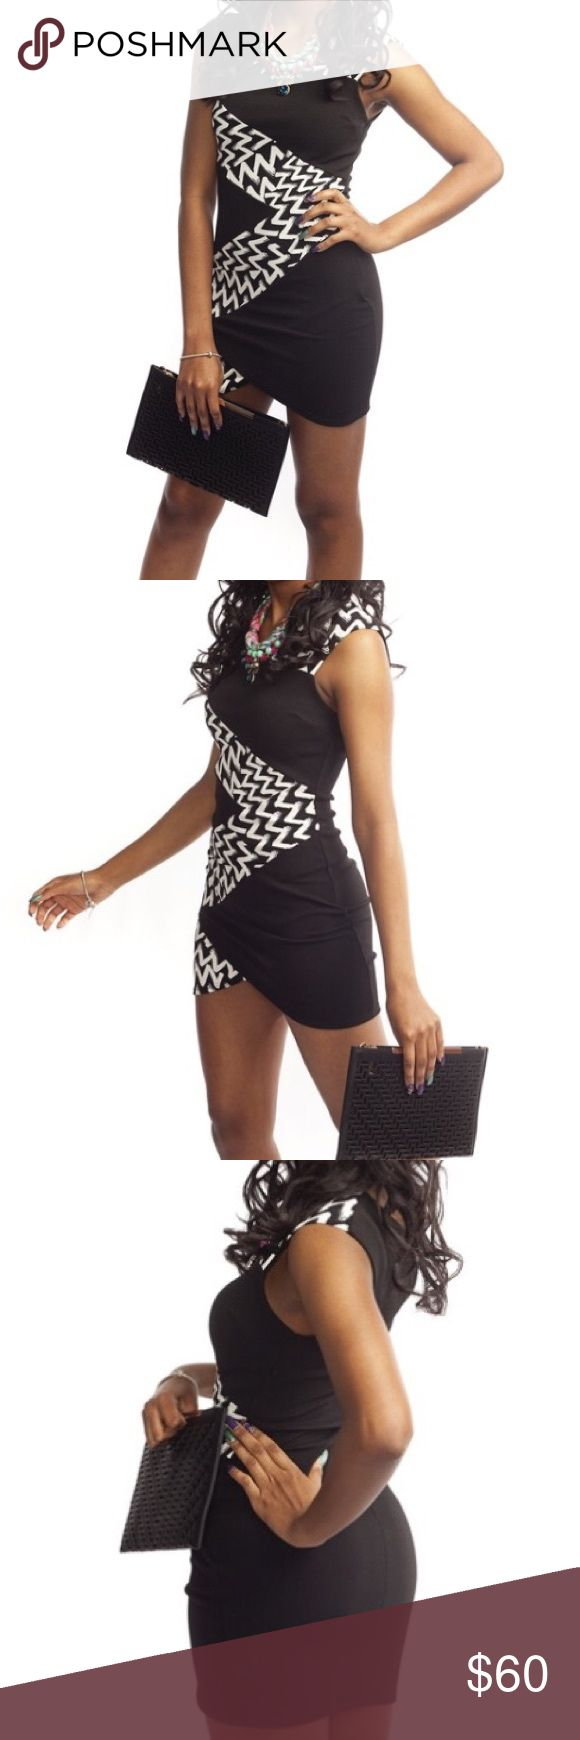 Black & White Zig Zag Bodycon Dress Black and white cap sleeve fitted dress with zig zag design on front. 96% Polyester 4% Spandex Dresses